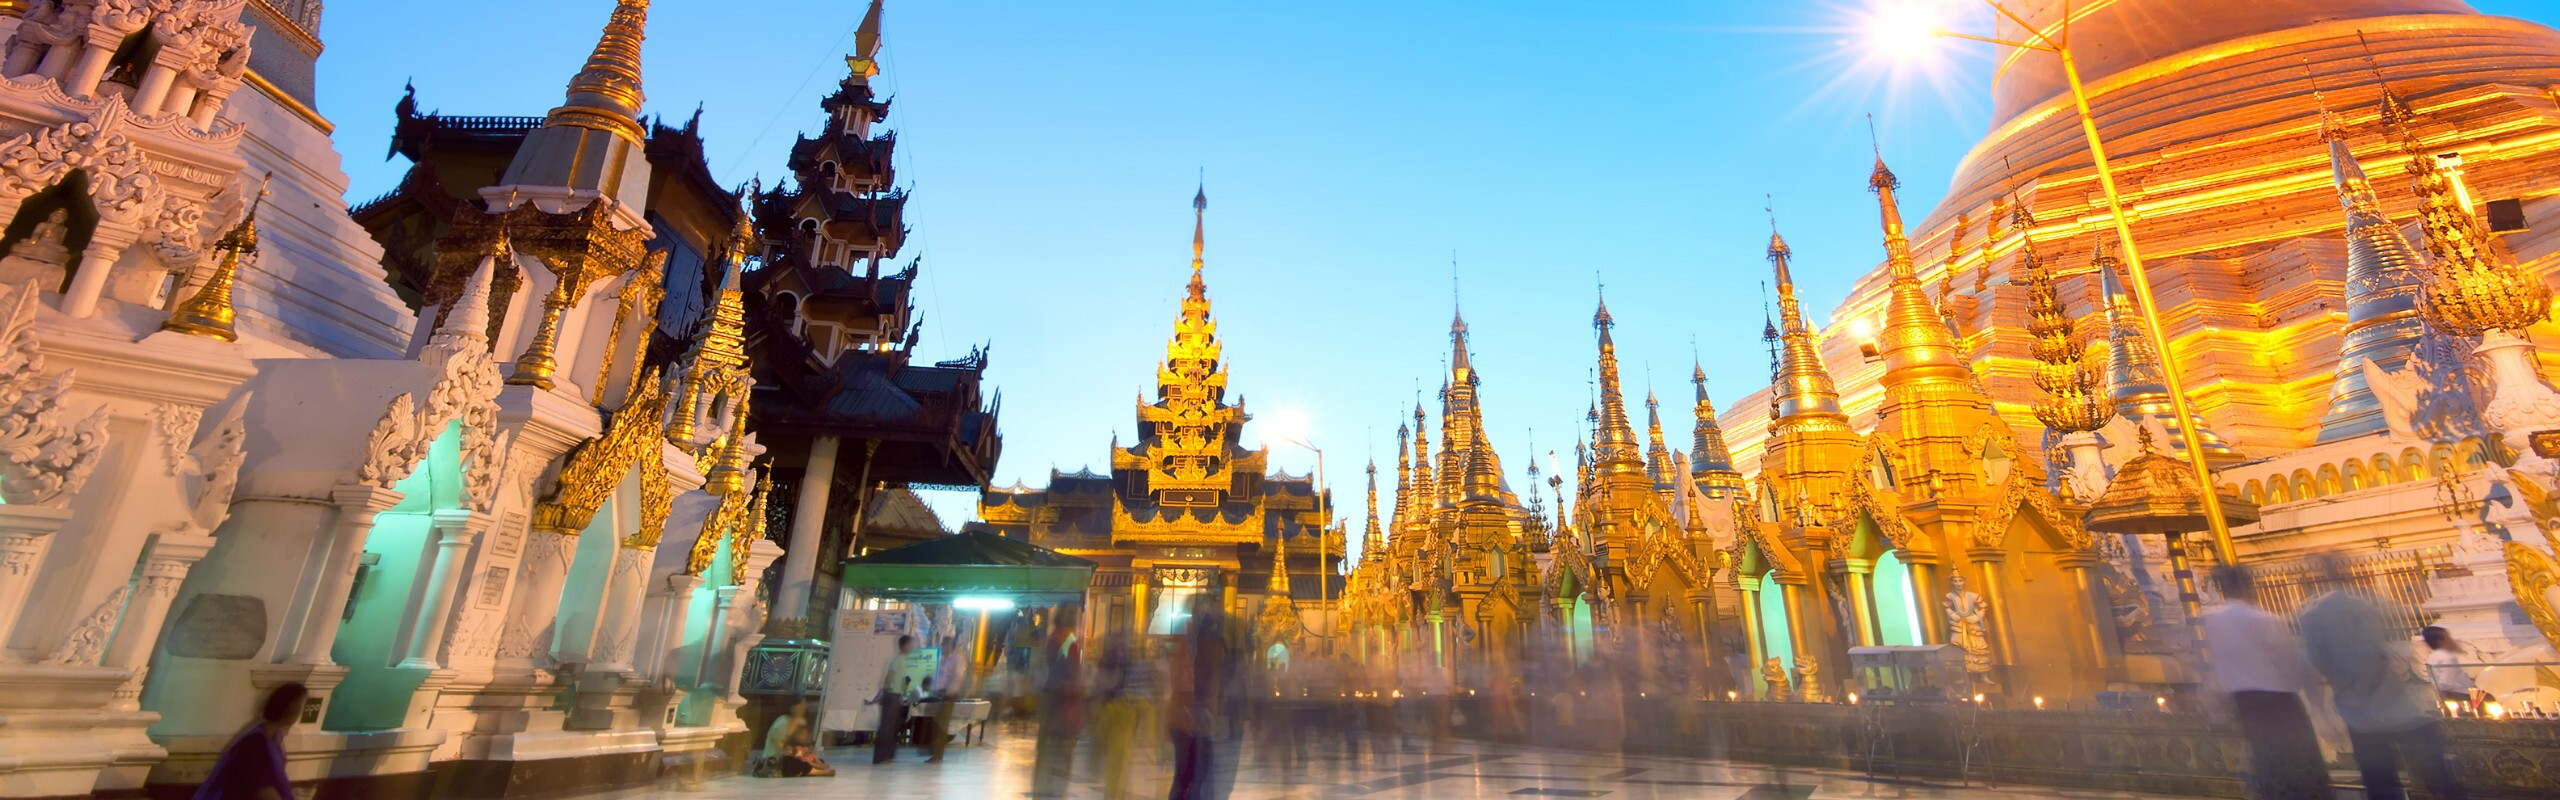 Yangon Weather - best time to visit